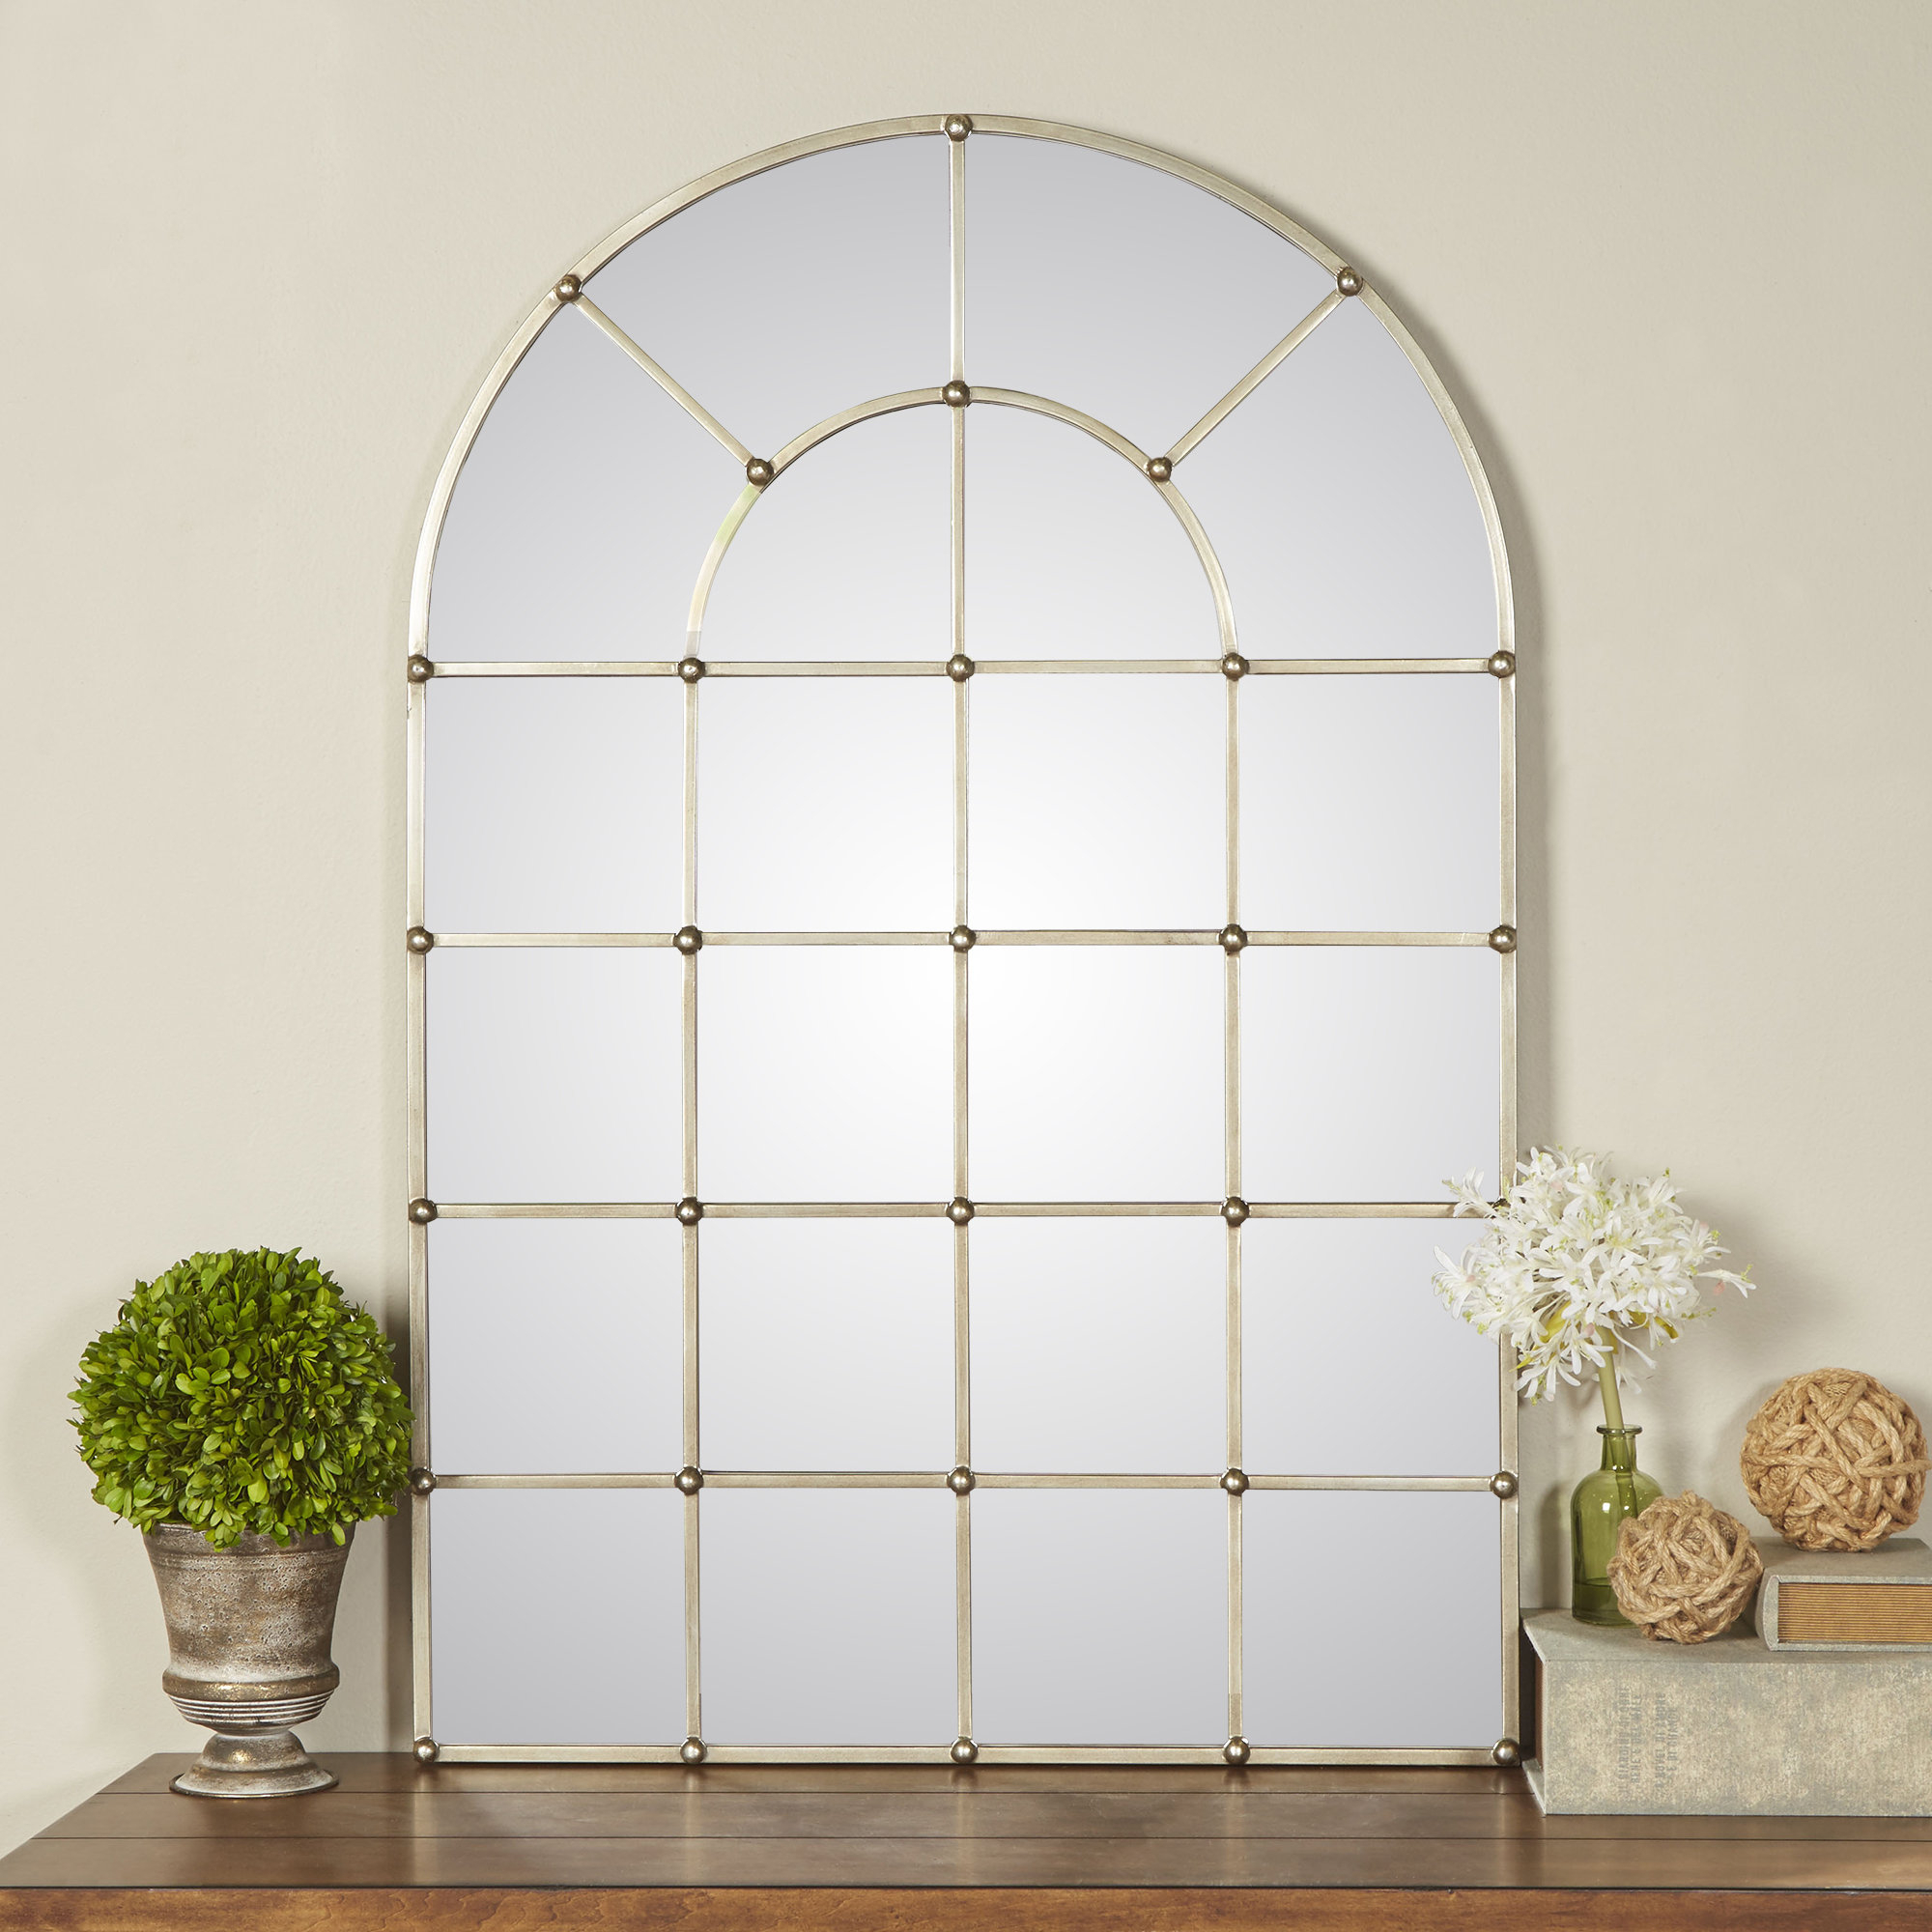 One Allium Way Metal Arch Window Wall Mirror & Reviews Regarding Metal Arch Window Wall Mirrors (Image 17 of 20)